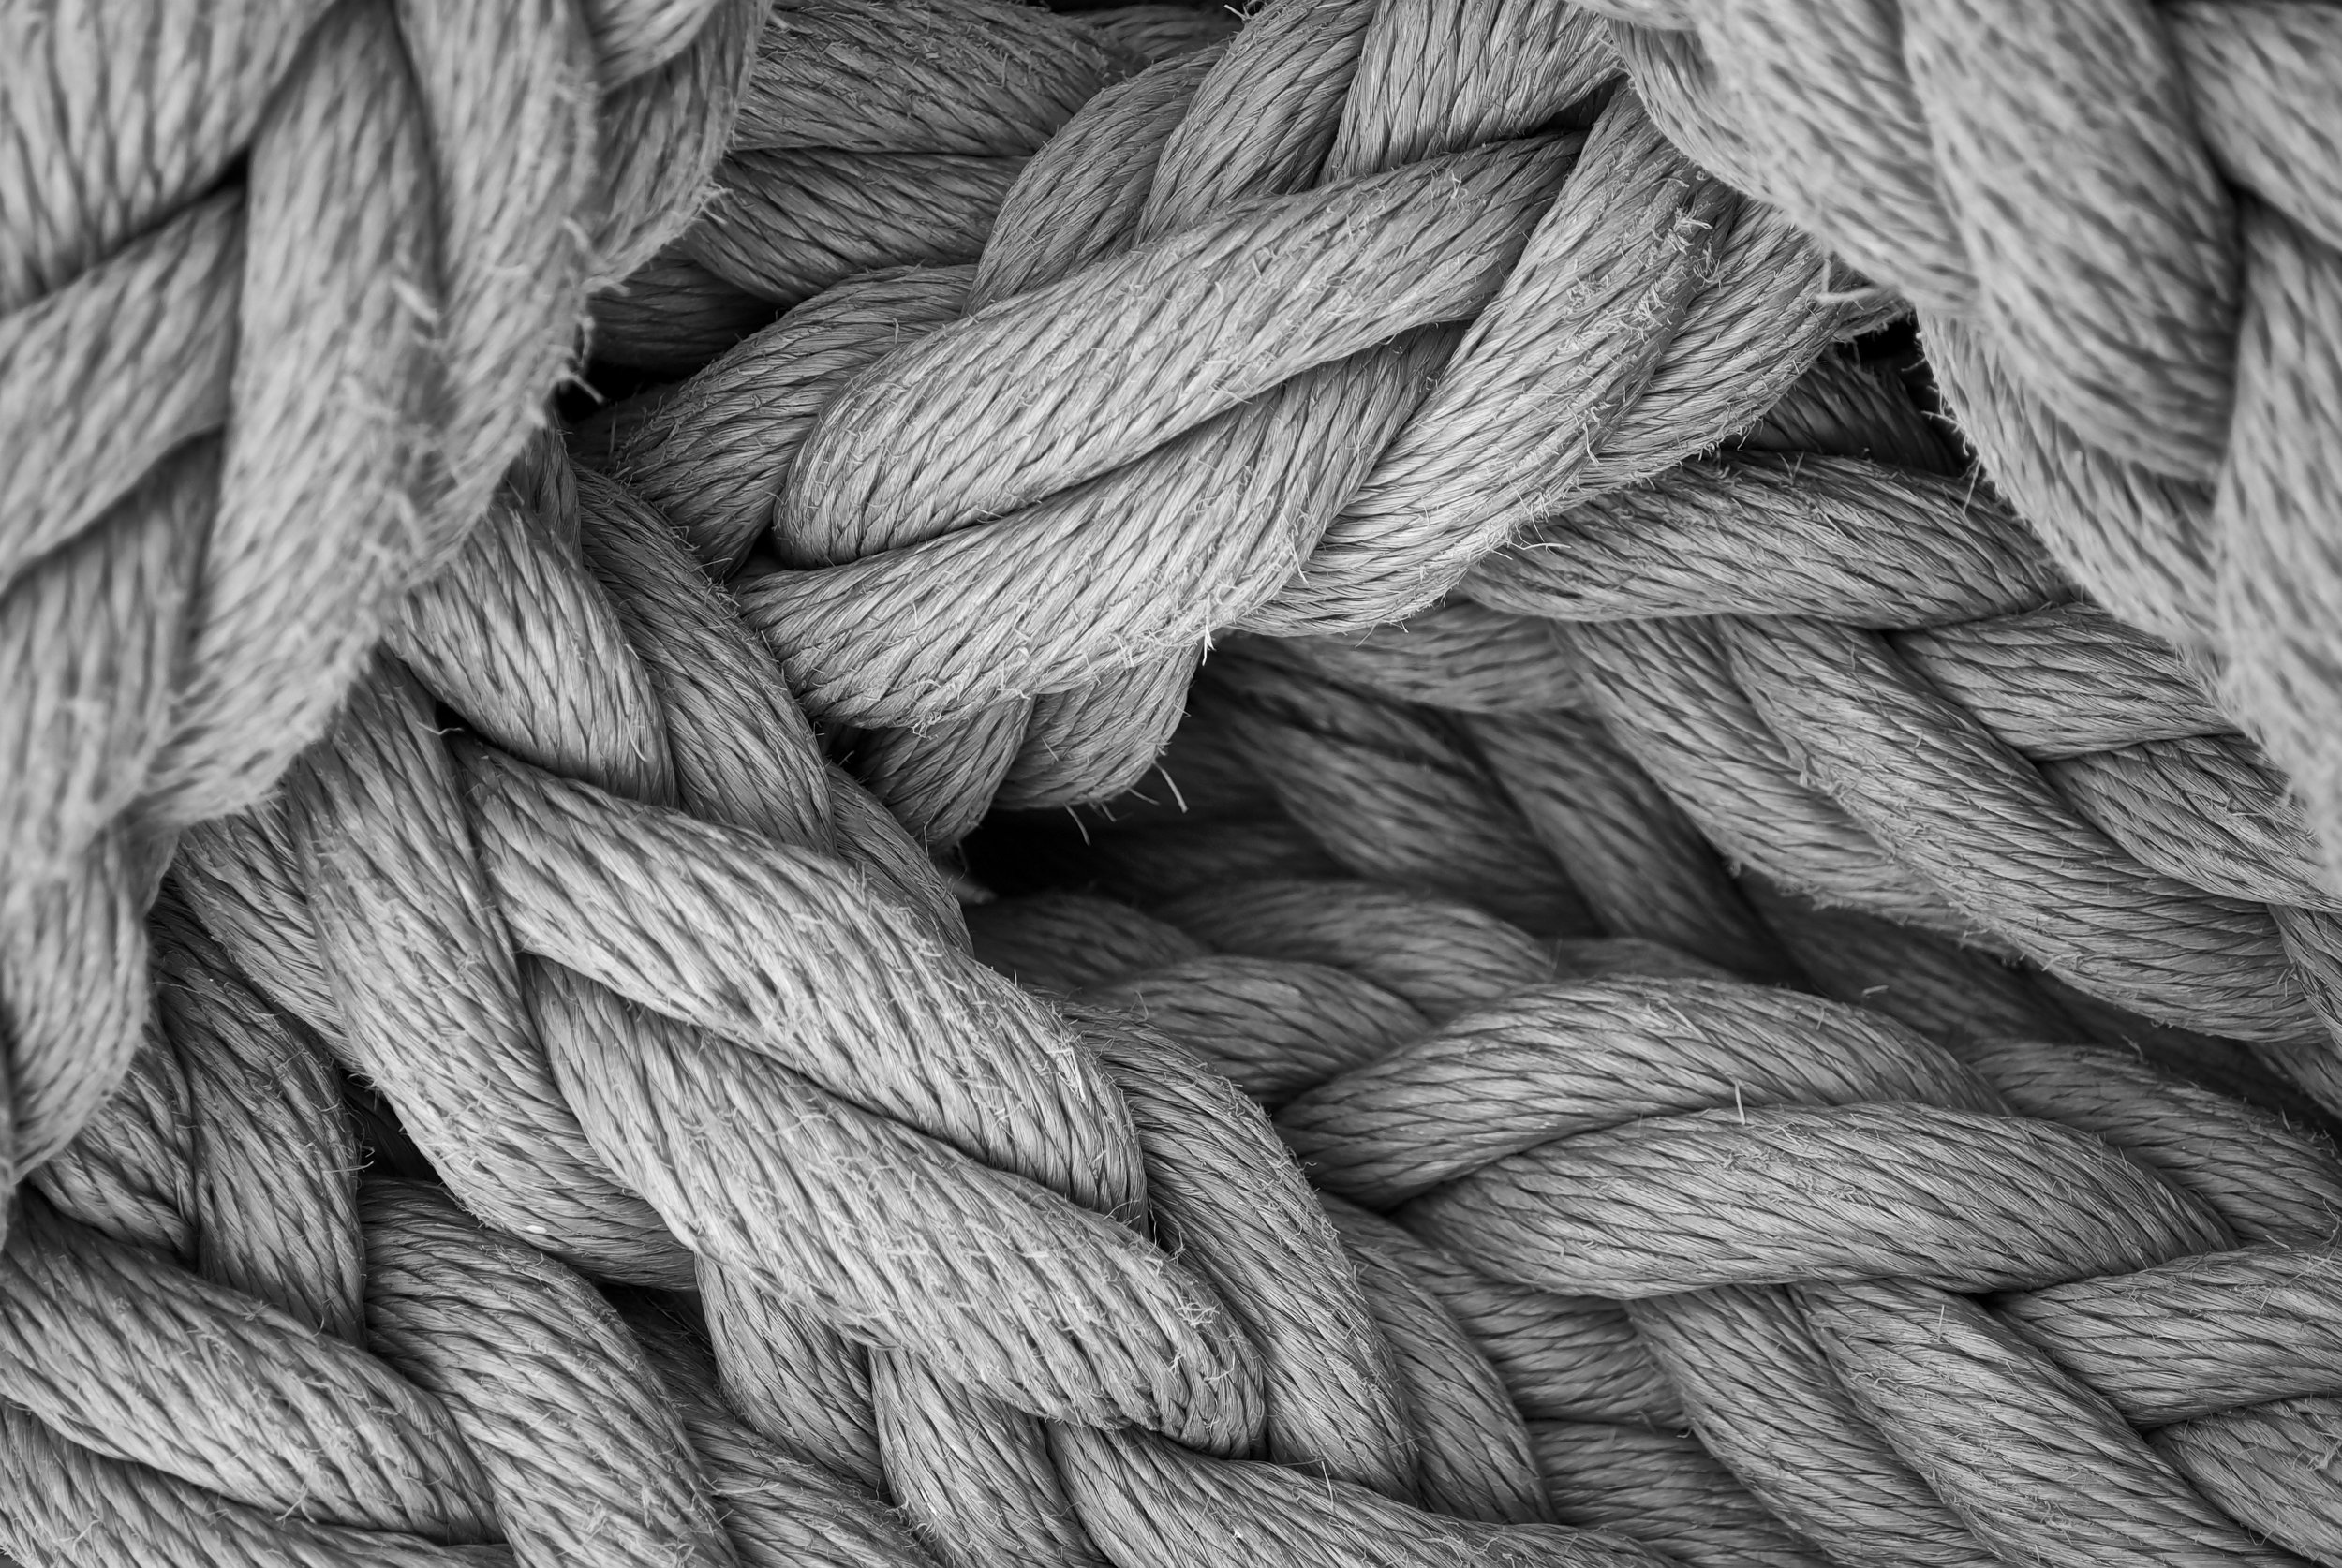 Services - Fairlie Riggers offer a full standing and running rigging service whether it be for a traditional or modern yachts.  All rope and wire work for marine or your architectural projects available.